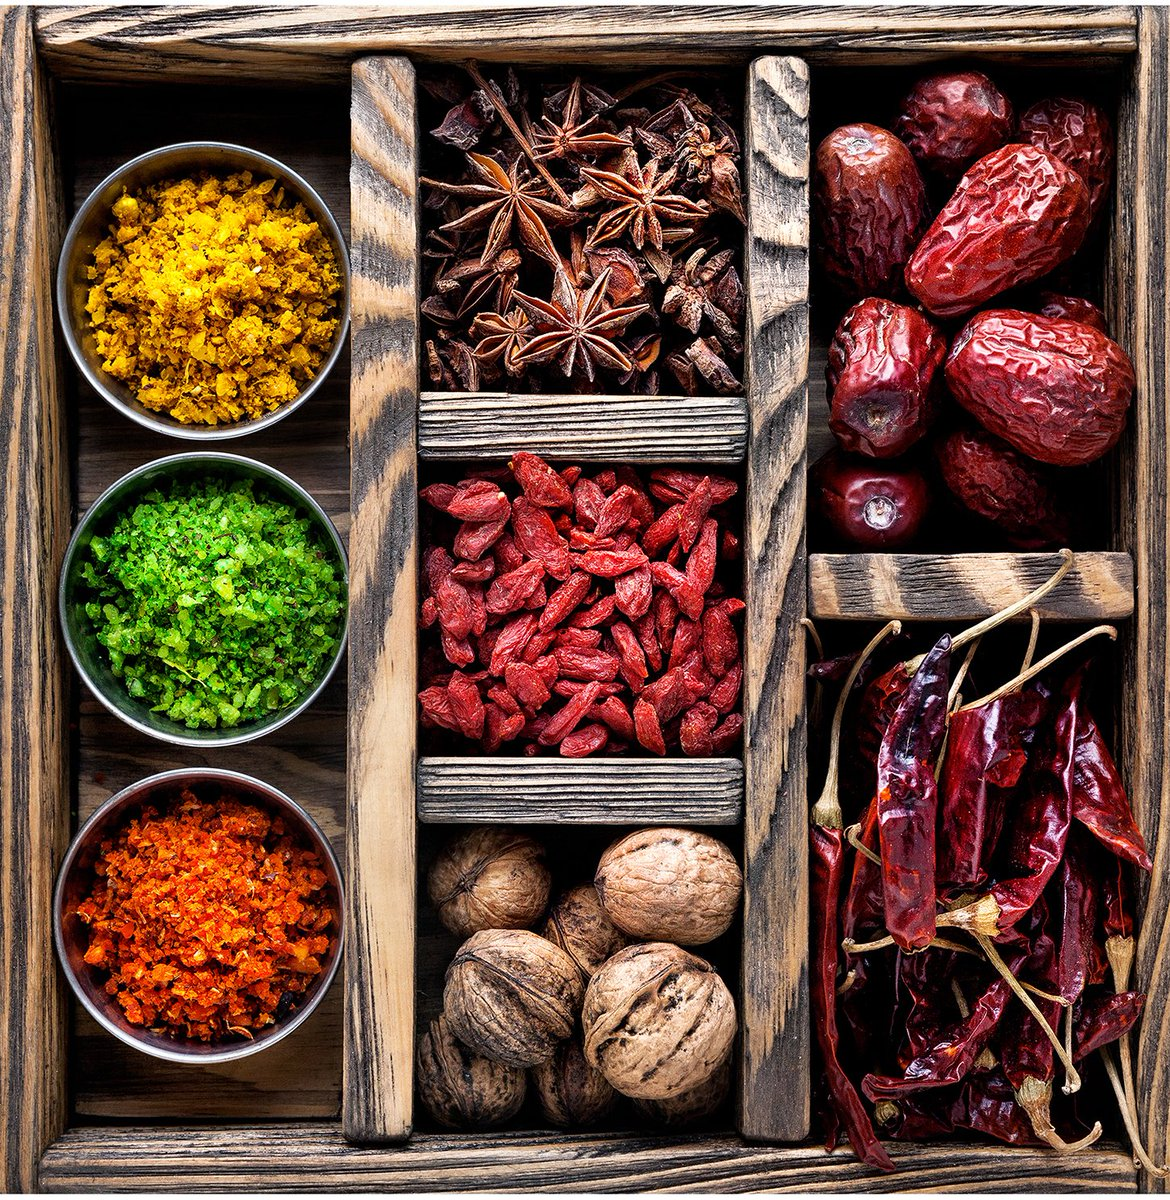 #Solina Group Signs Off on Romanian #Spice Deal  http://www. foodingredientsfirst.com/news/Solina-Gr oup-Signs-Off-on-Romanian-Spice-Deal.html &nbsp; … <br>http://pic.twitter.com/ycpPhyDURR